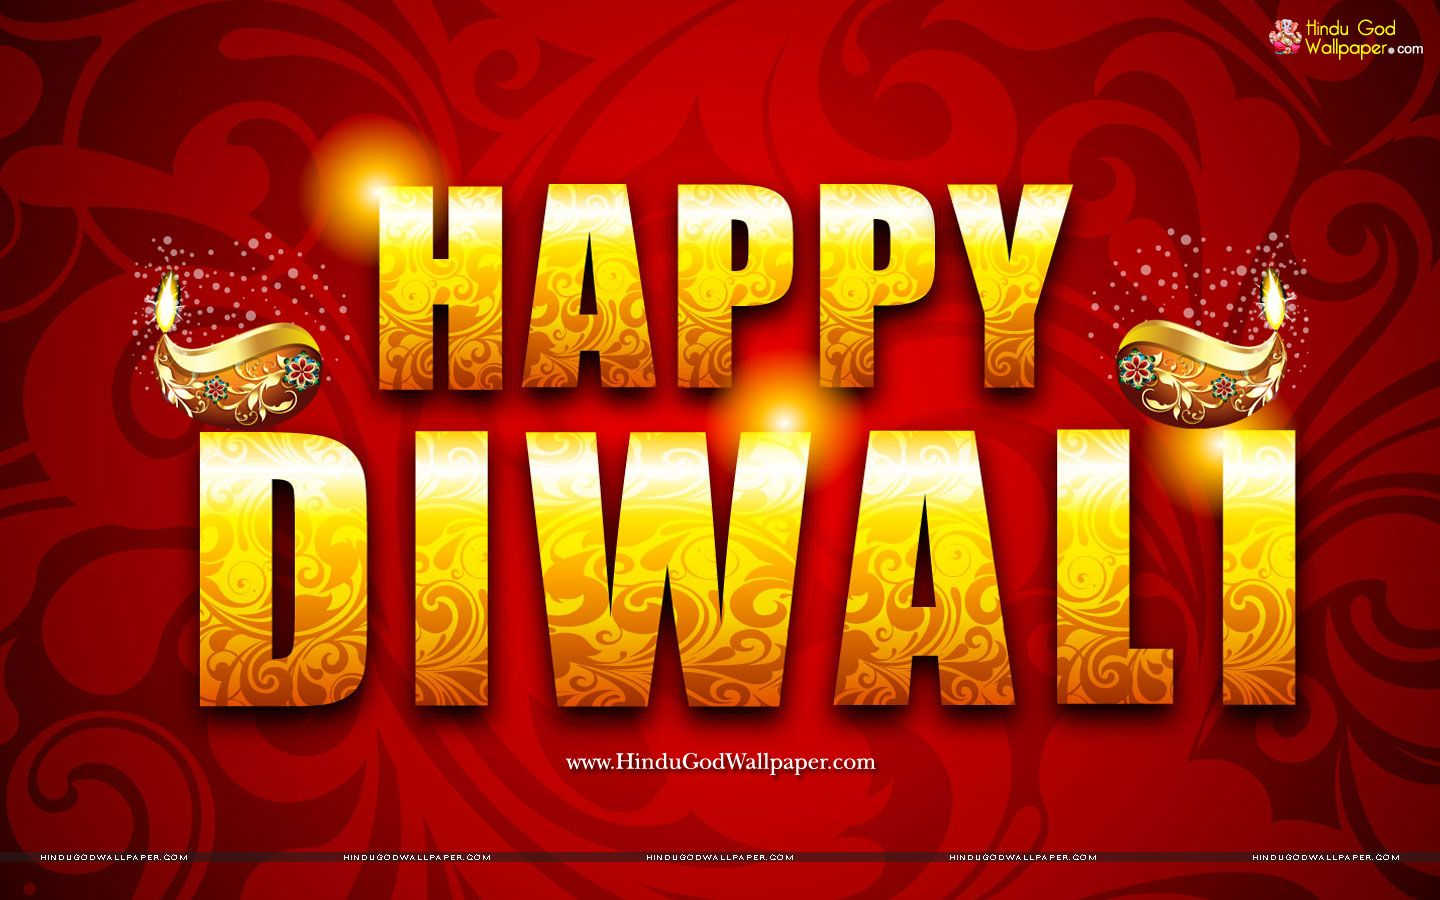 happy diwali name wallpaper free download | diwali wallpapers